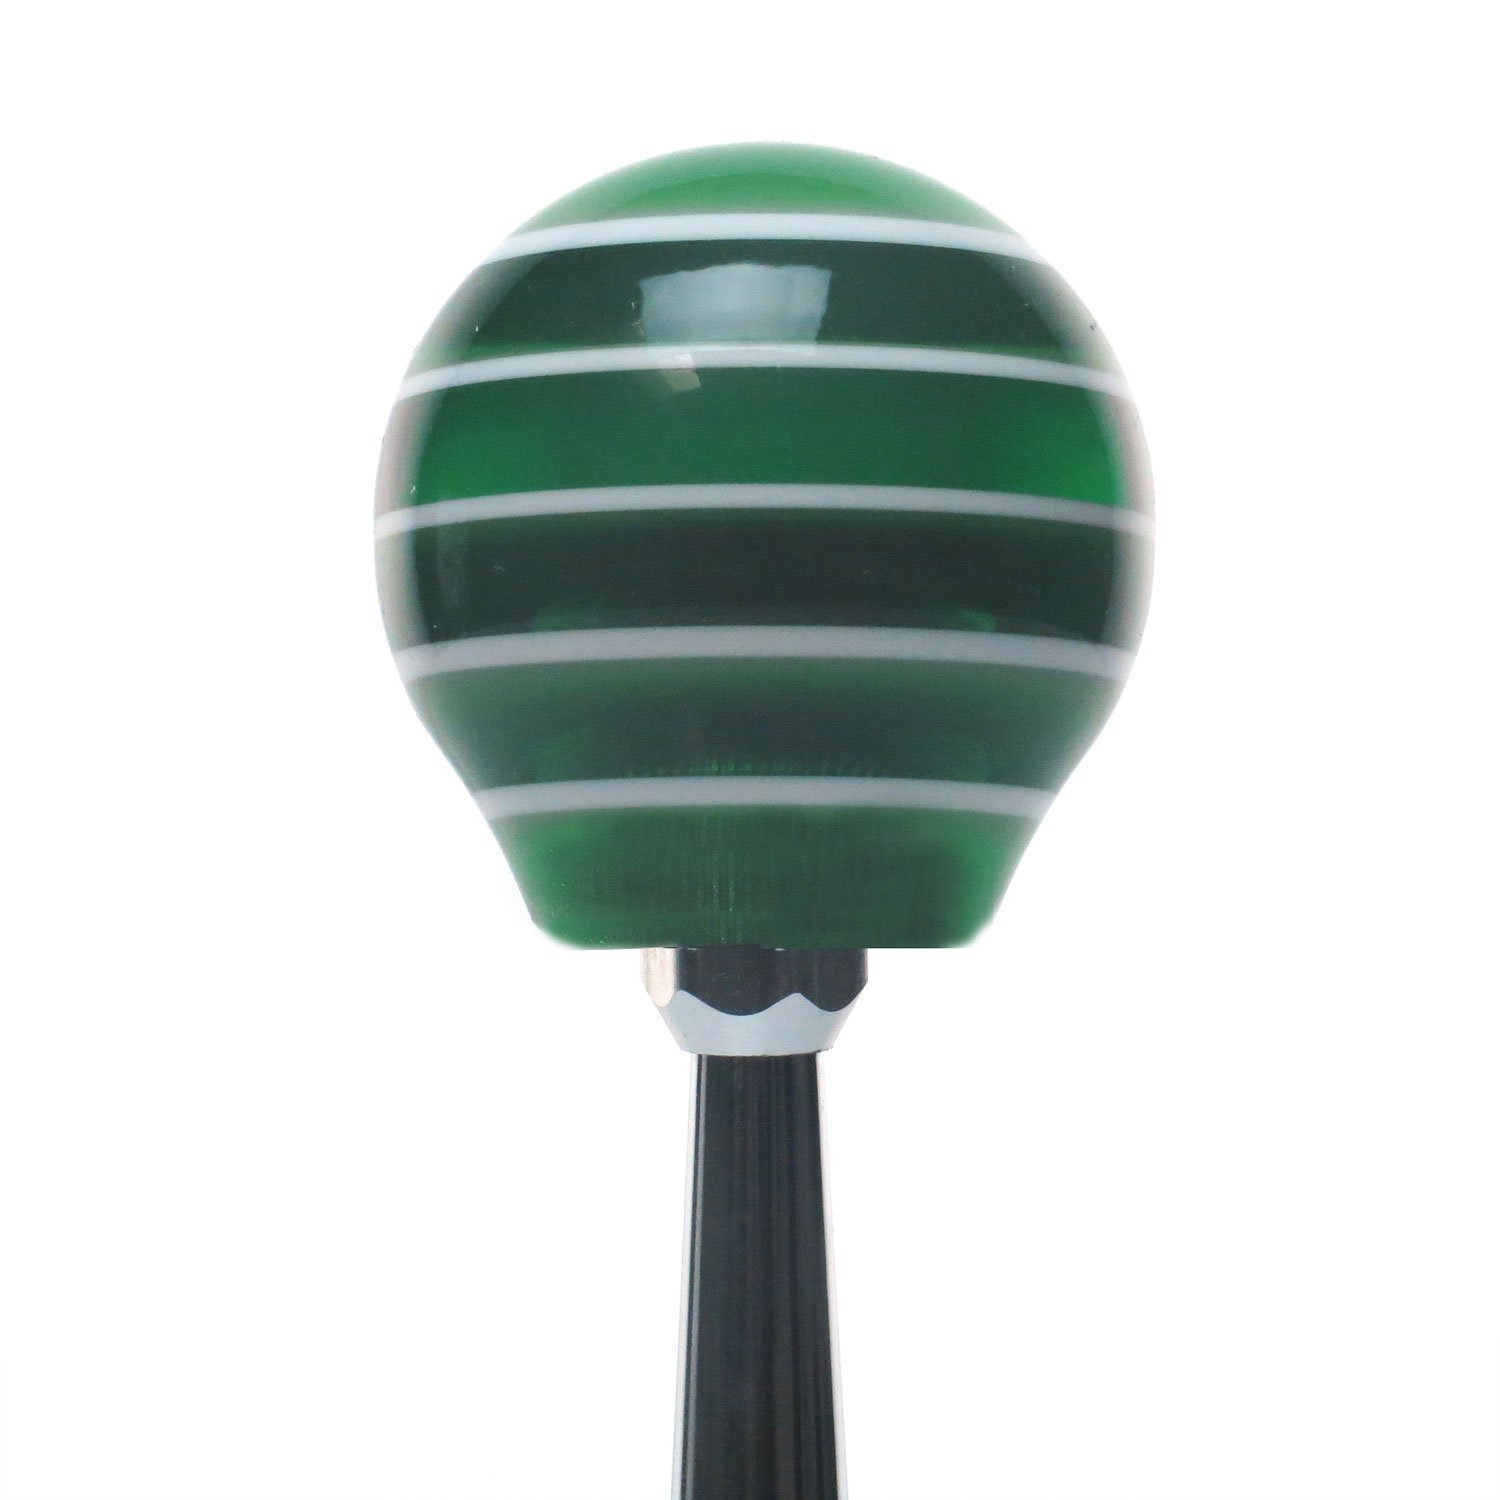 American Shifter 129193 Green Stripe Shift Knob with M16 x 1.5 Insert White Size Matters